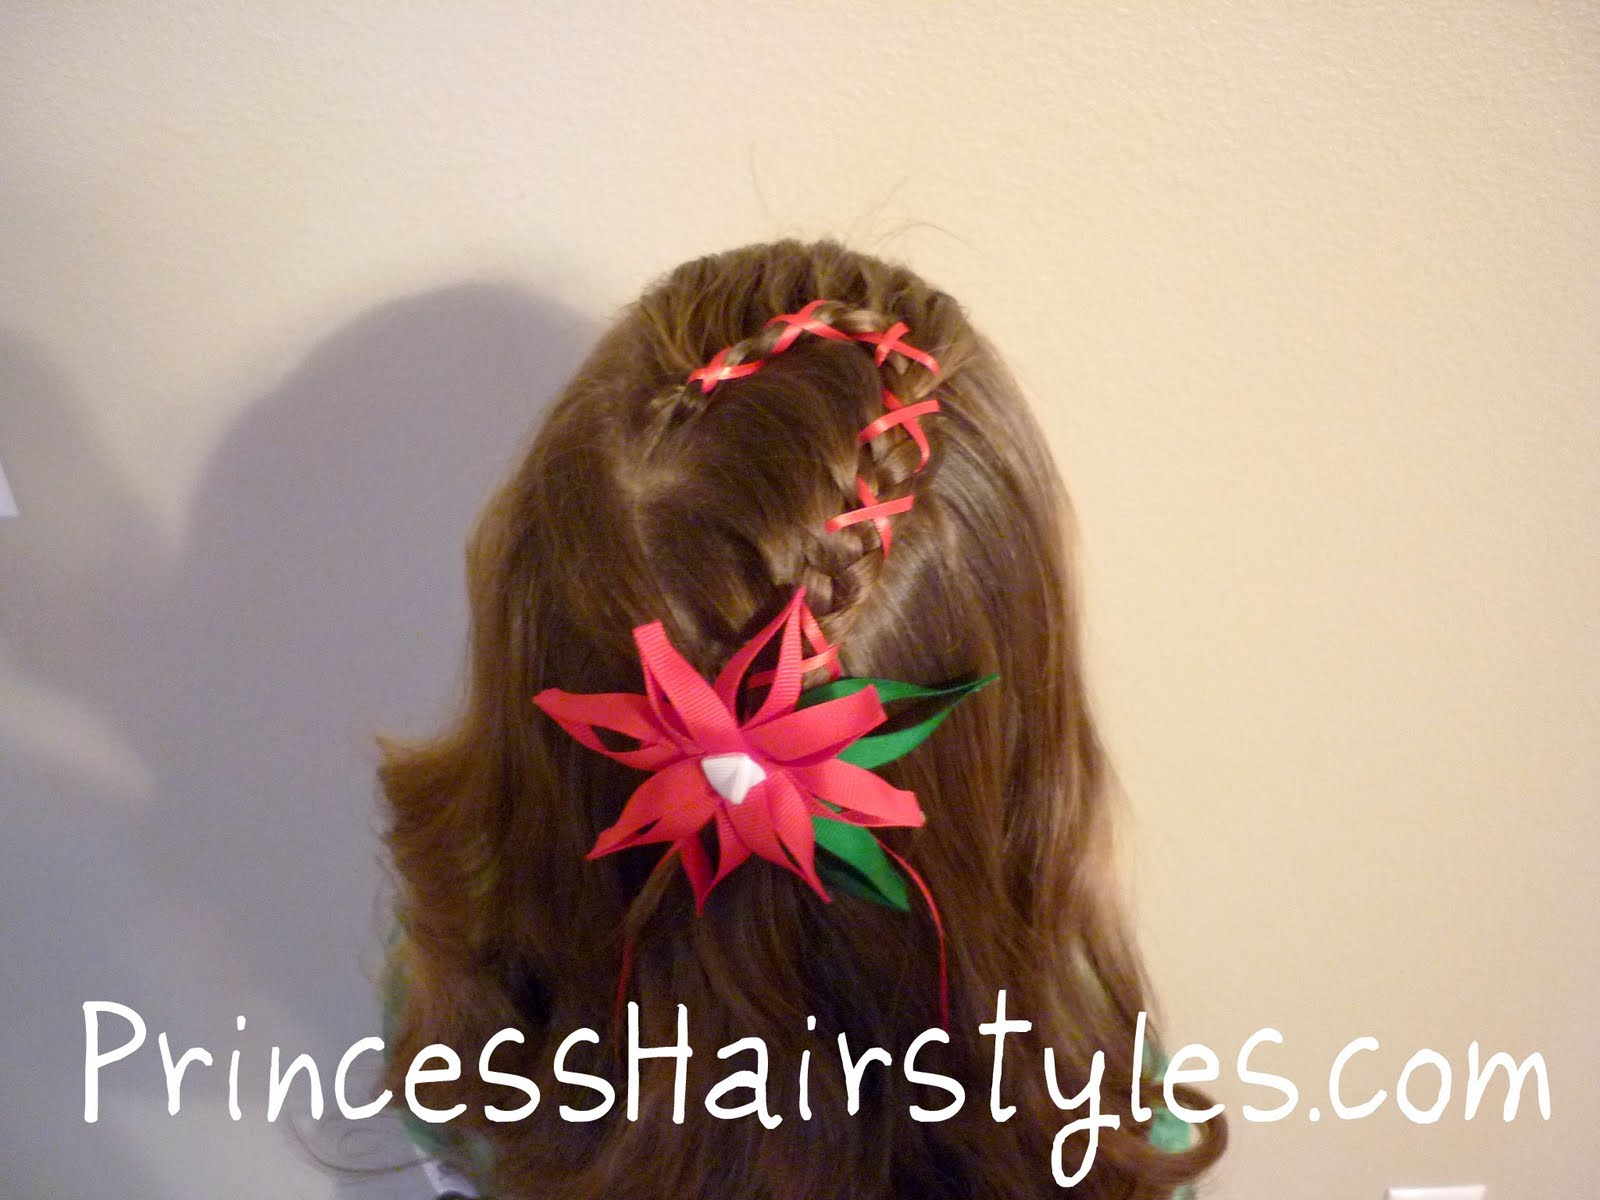 Sensational Candy Cane French Braid With Ribbon Hairstyles For Girls Short Hairstyles For Black Women Fulllsitofus